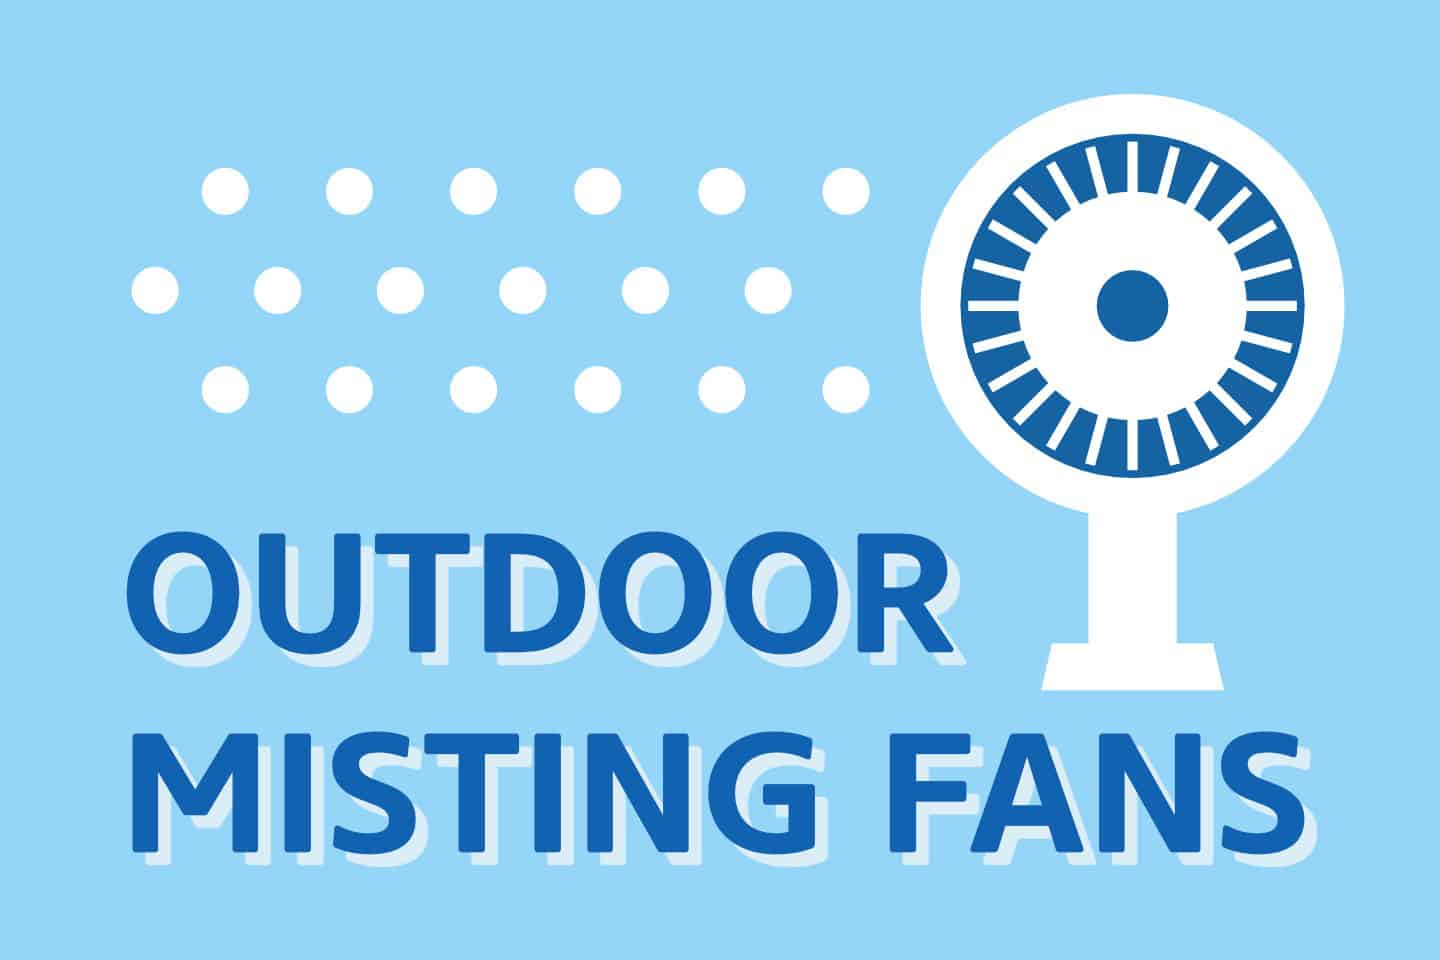 ❄️ Best Outdoor Misting Fans That you Need